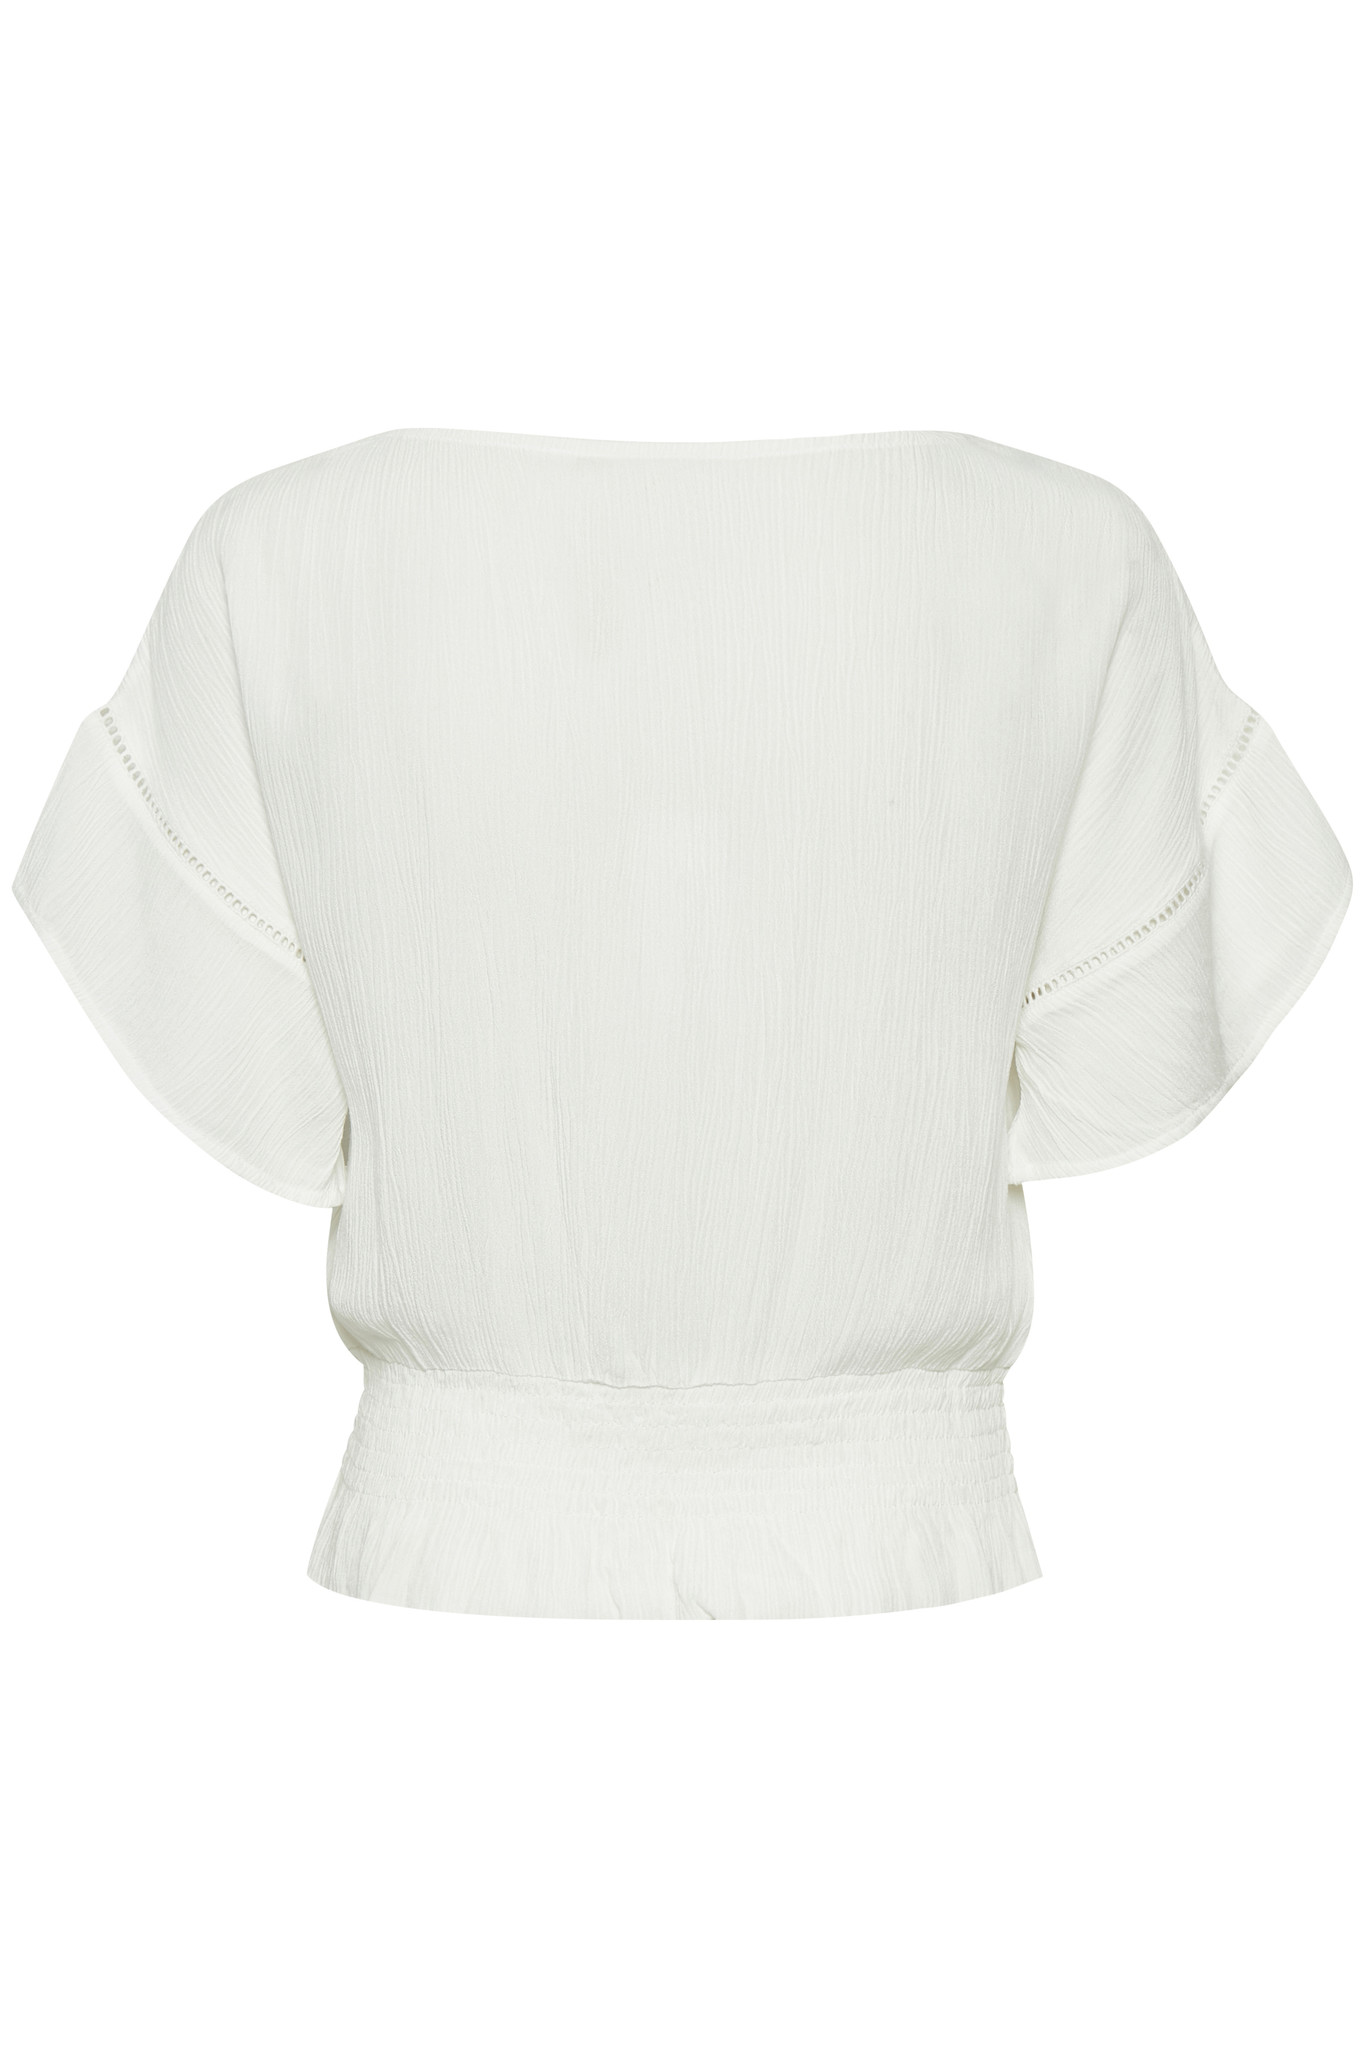 Blouse AnnyCR Blouse EcoVero Chalk Solid-2